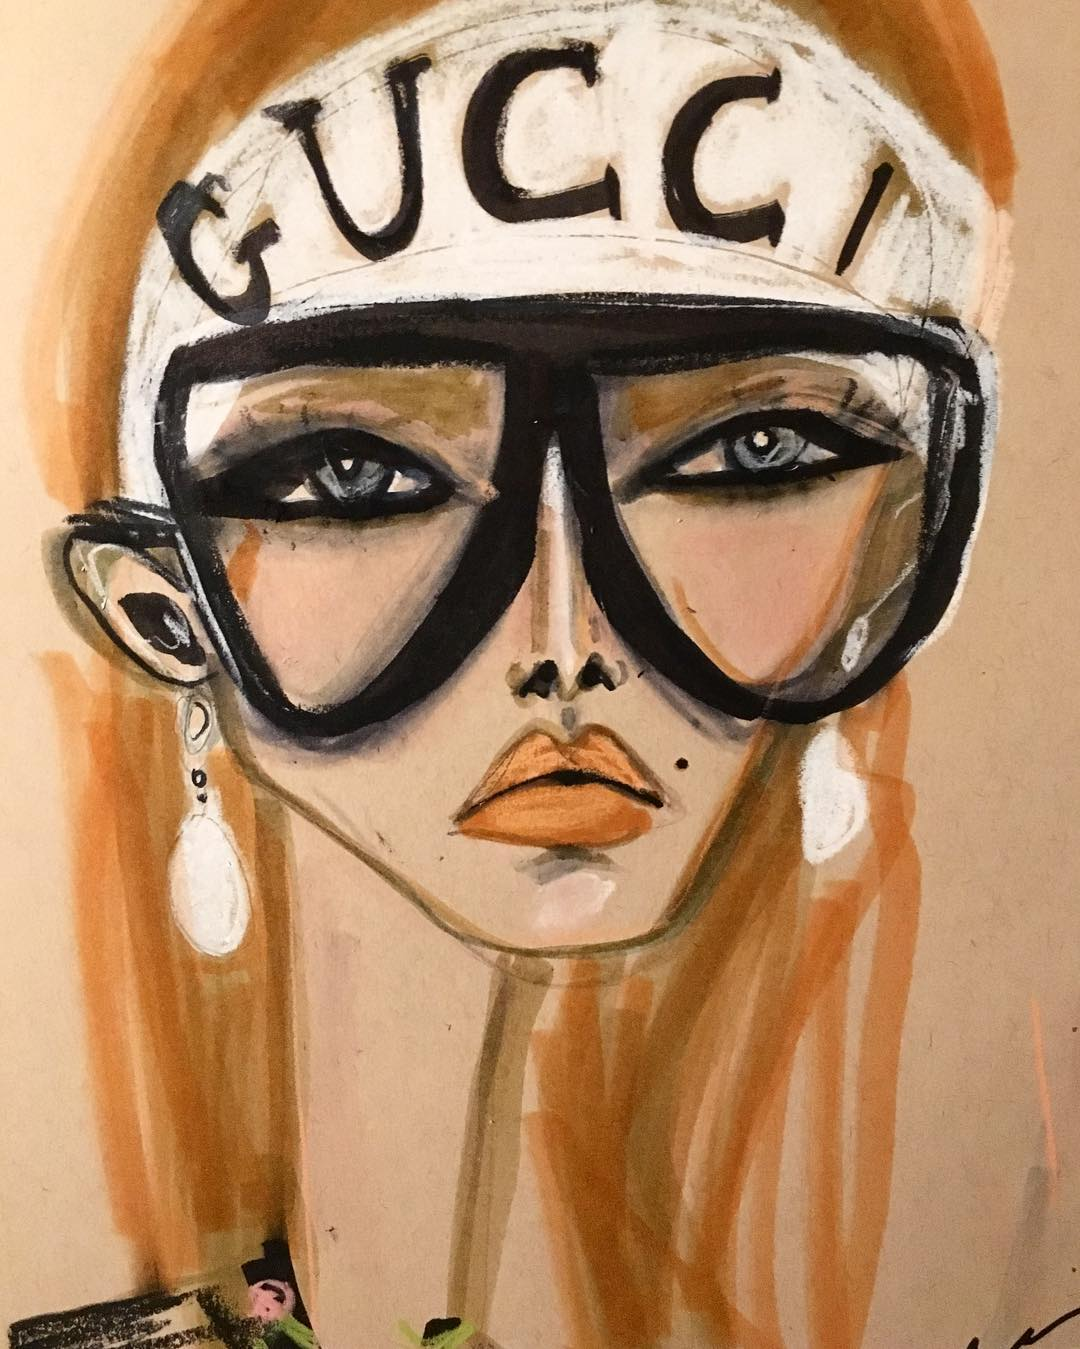 Gucci fashion illustration by Blair Breitenstein